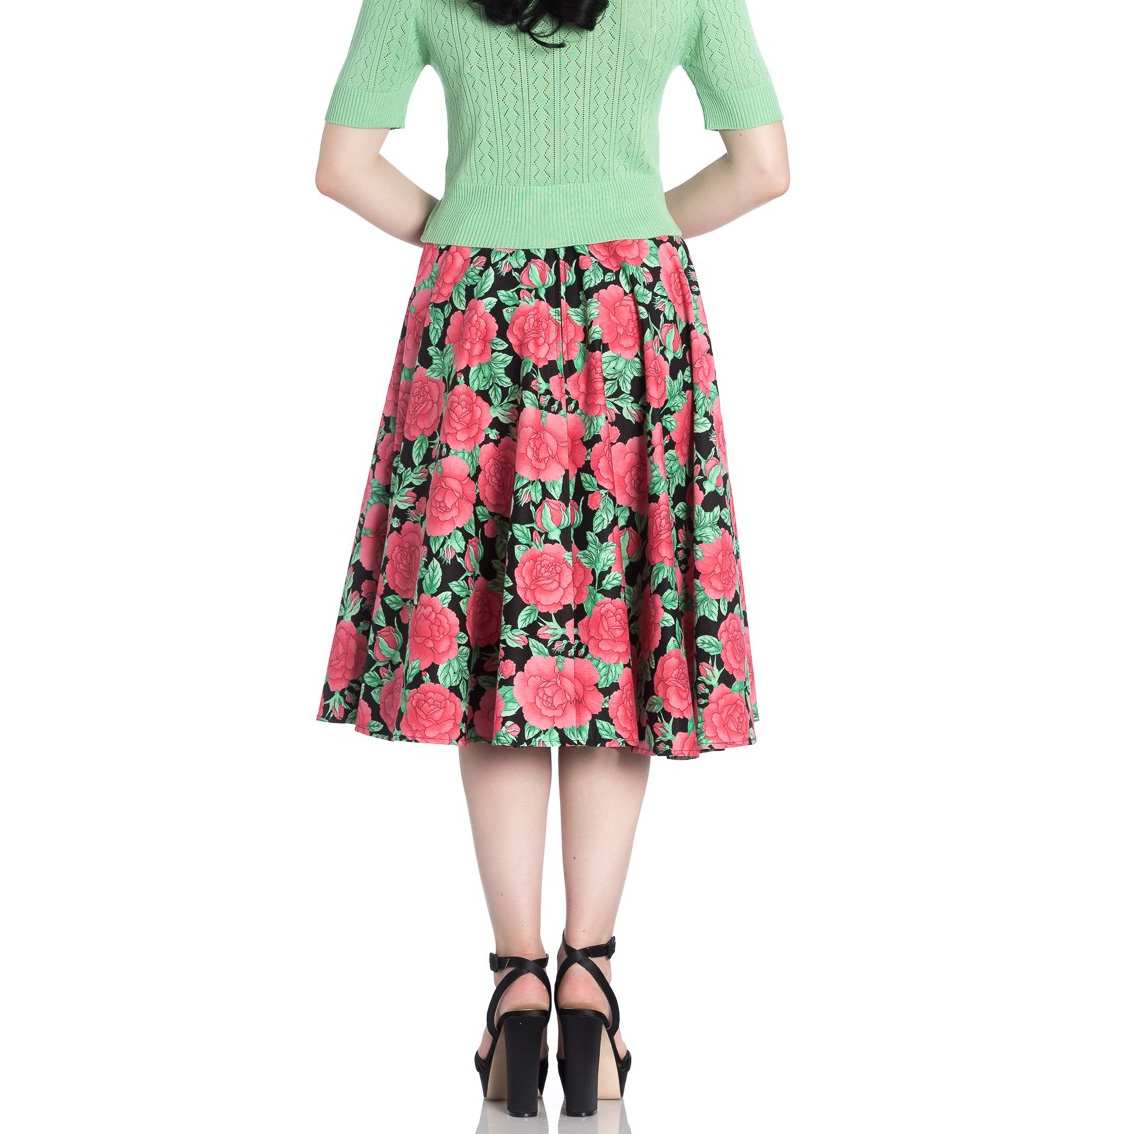 Hell Bunny 50s Vintage Black Skirt Floral Flowers DARCY Pink Roses All Sizes